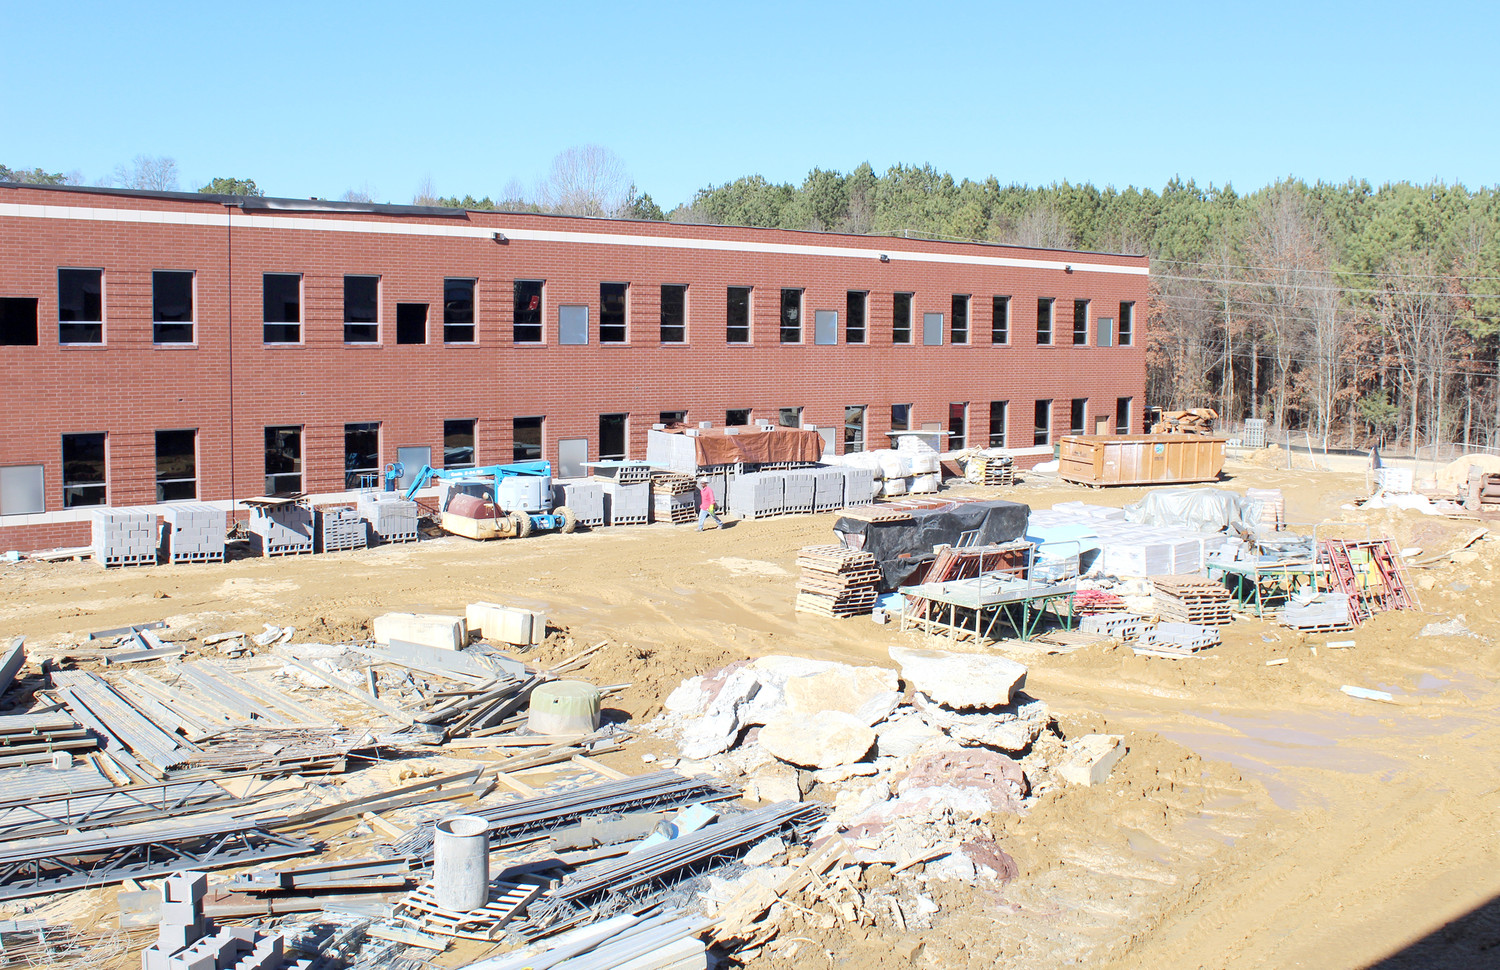 CONSTRUCTION is underway on a new academic building for students at Lake Forest Middle School. It is expected to be ready for students to begin classes there next fall.